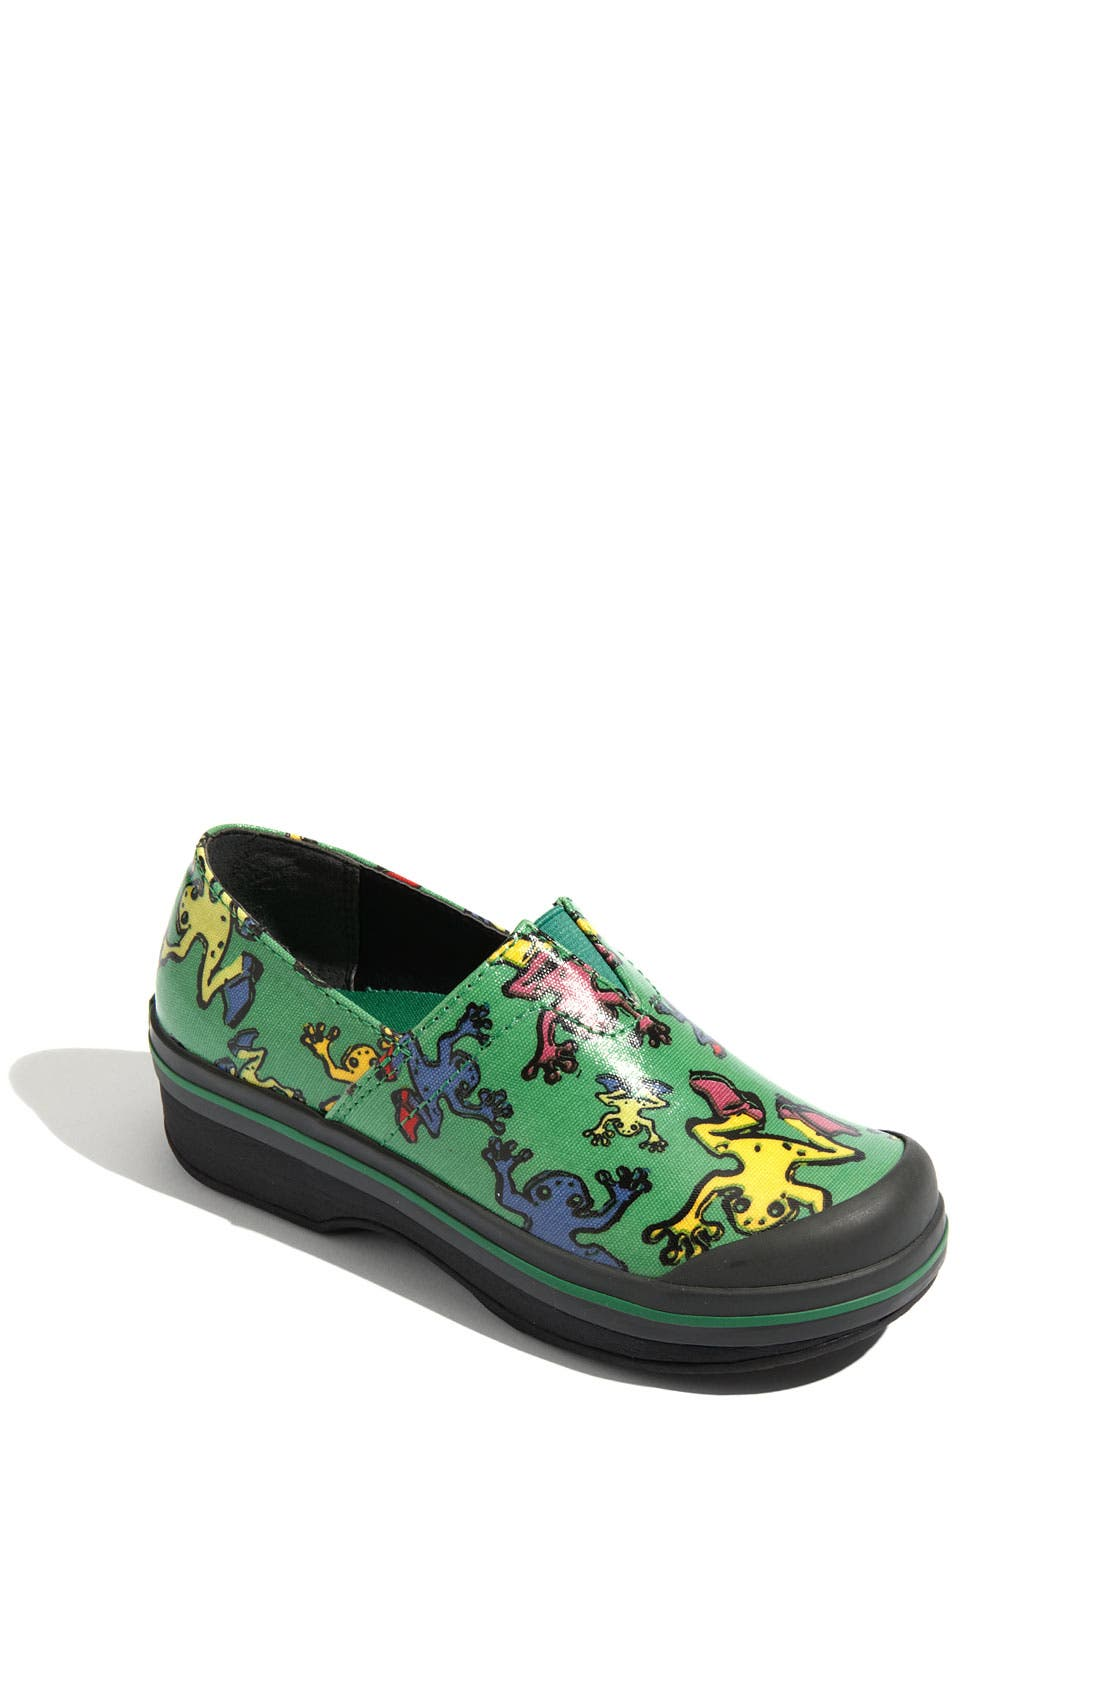 Alternate Image 1 Selected - Dansko 'Vesta' Rain Shoe (Toddler & Little Kid)